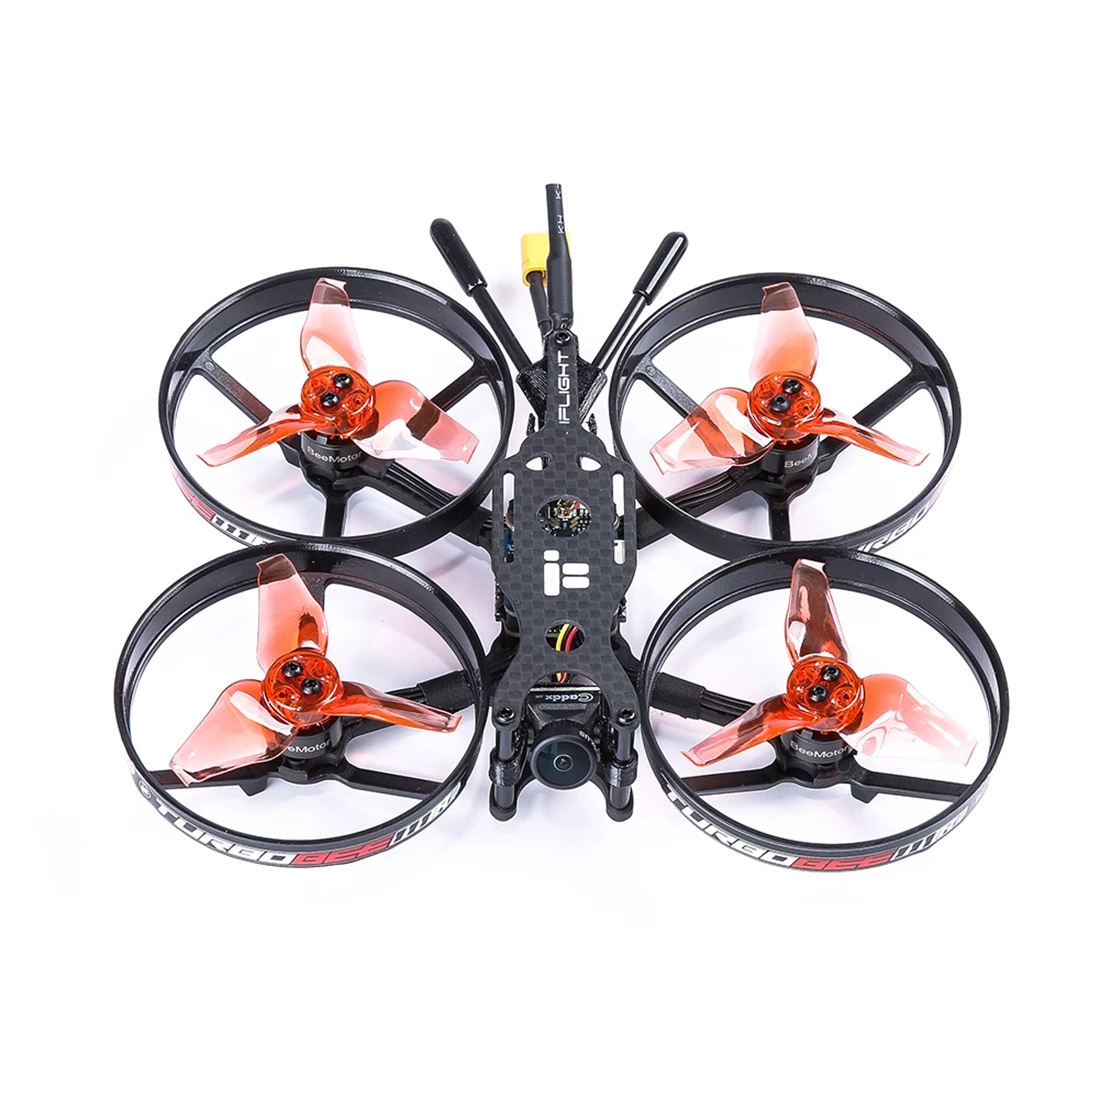 iFlight TurboBee 111R 111mm 4S 2.3 Inch Micro FPV Racing Drone PNP BNF with 1105 4500KV Motor Turbo Eos2 Camera  Quadcopter